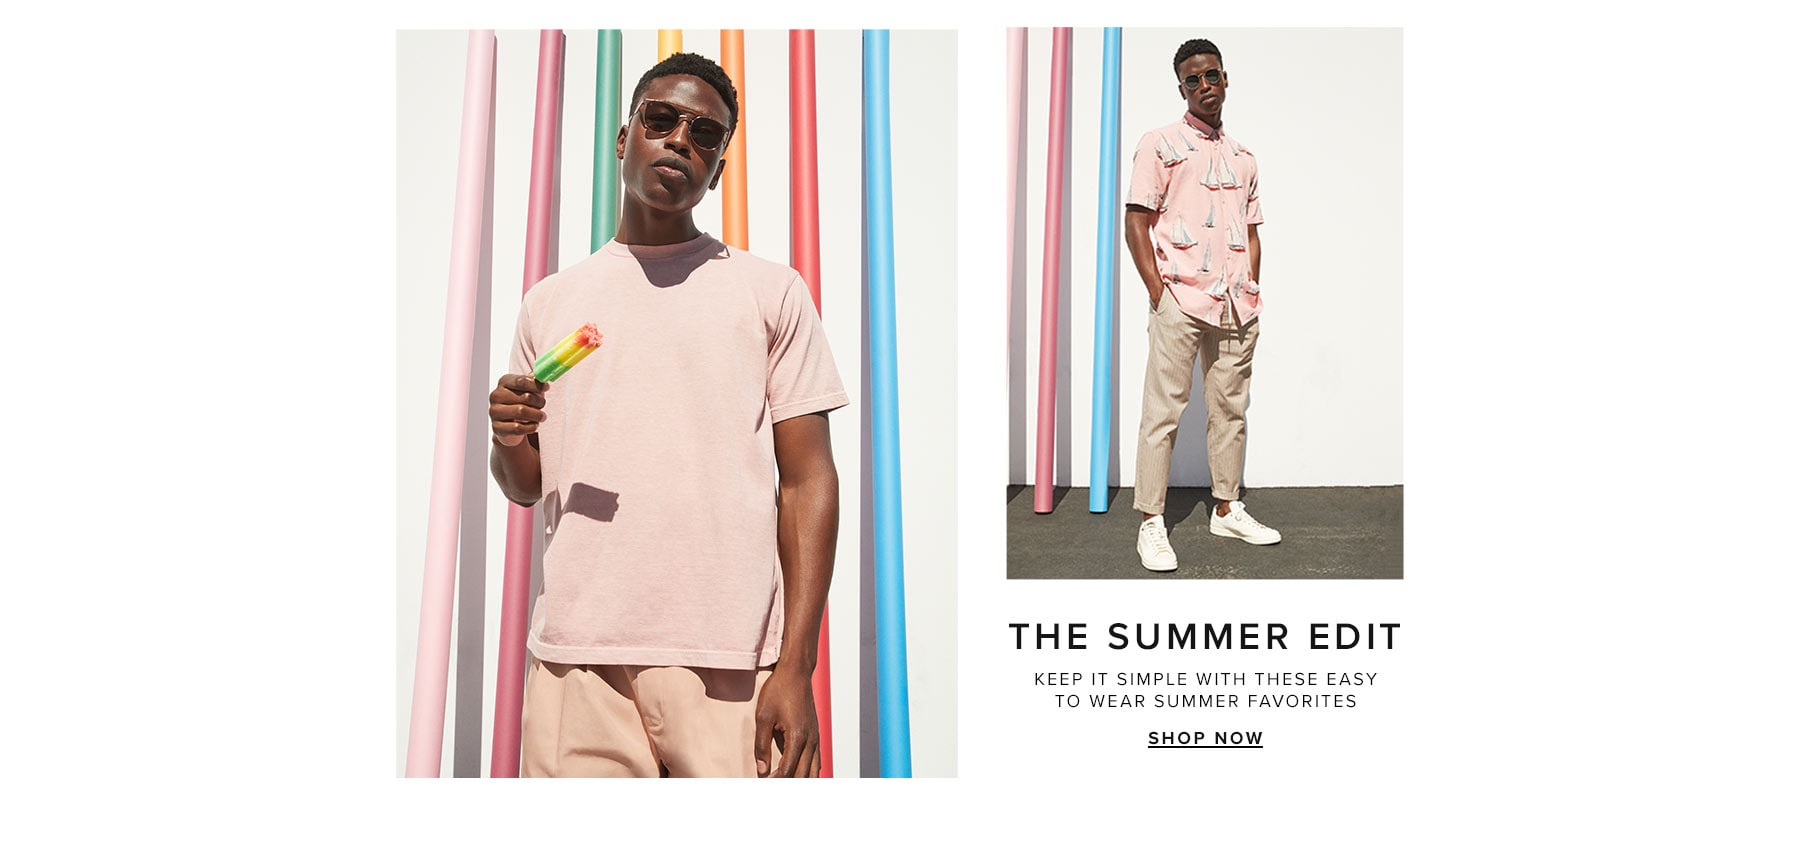 The summer edit. Keep it simple with these easy to wear summer favorites. Shop now.